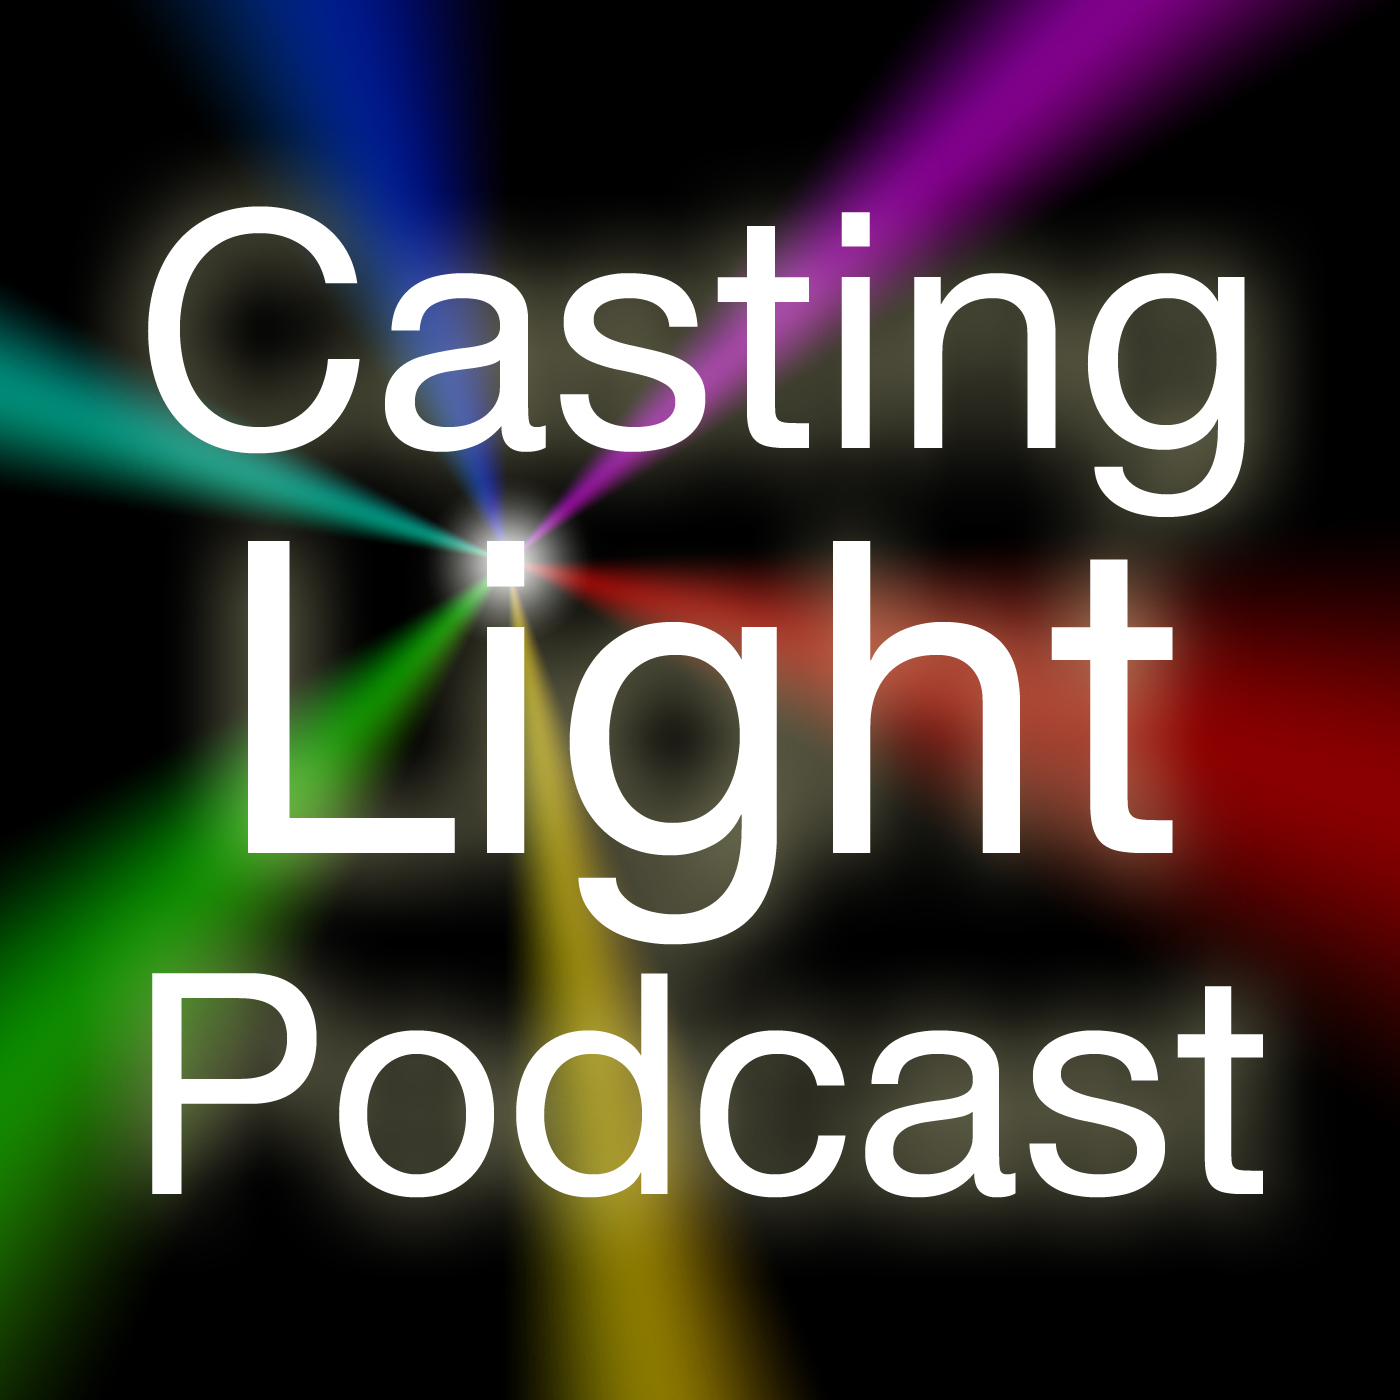 Casting Light Podcast